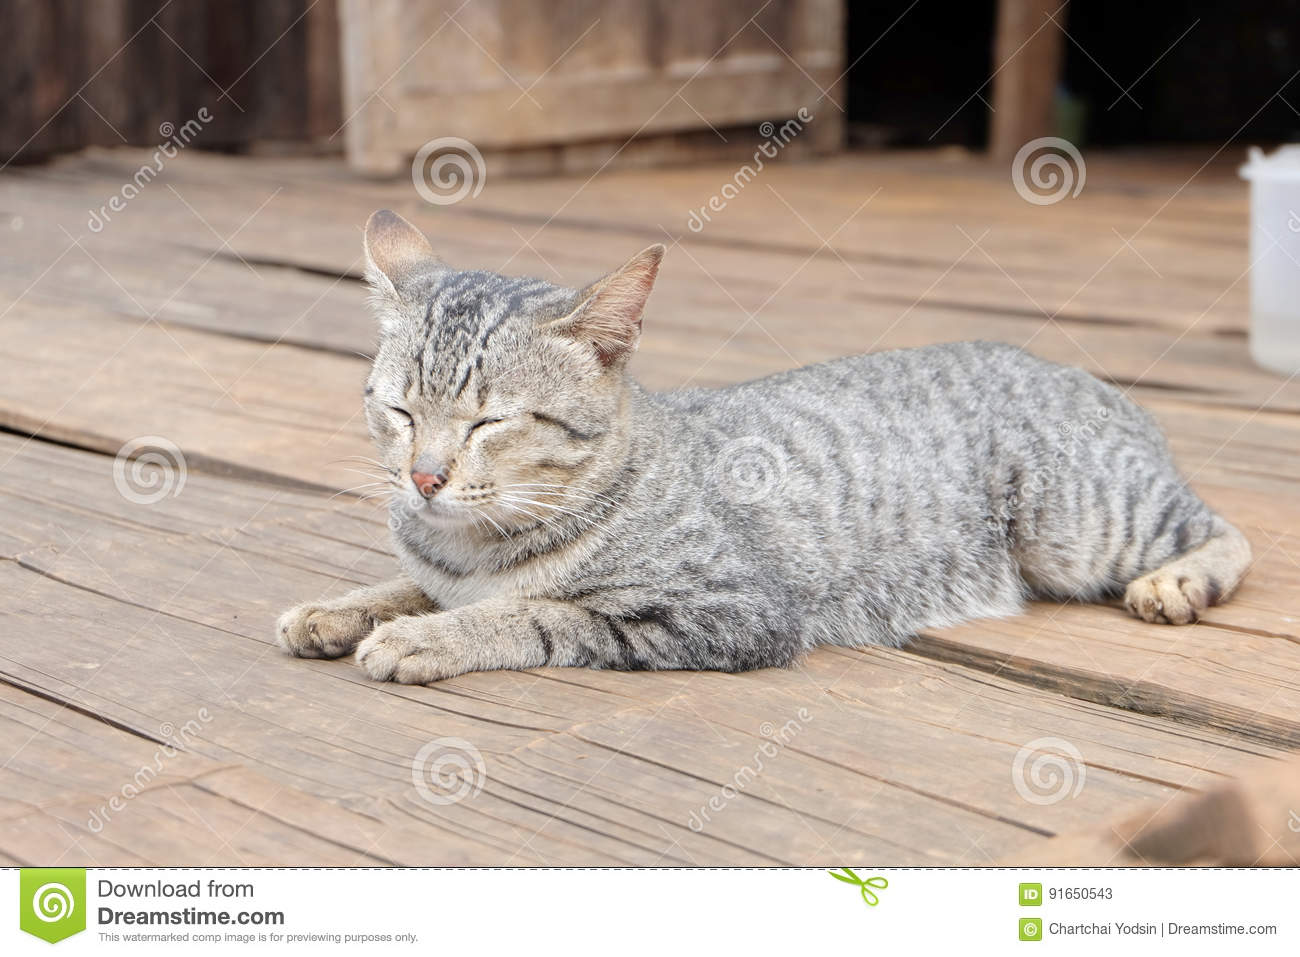 cat one the bamboo floor stock image image of thai forest 91650543 rh dreamstime com